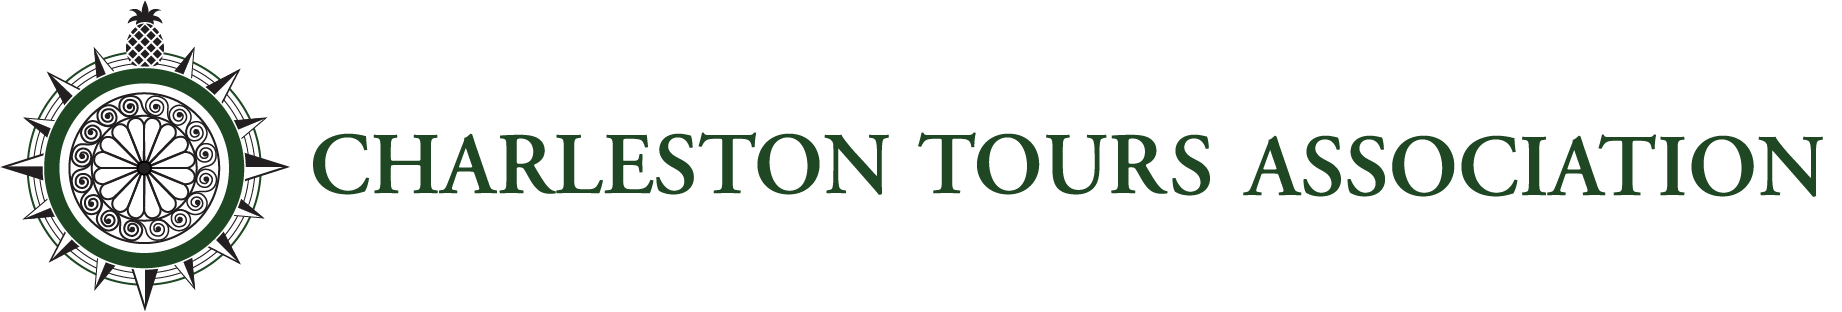 Charleston Tours Association